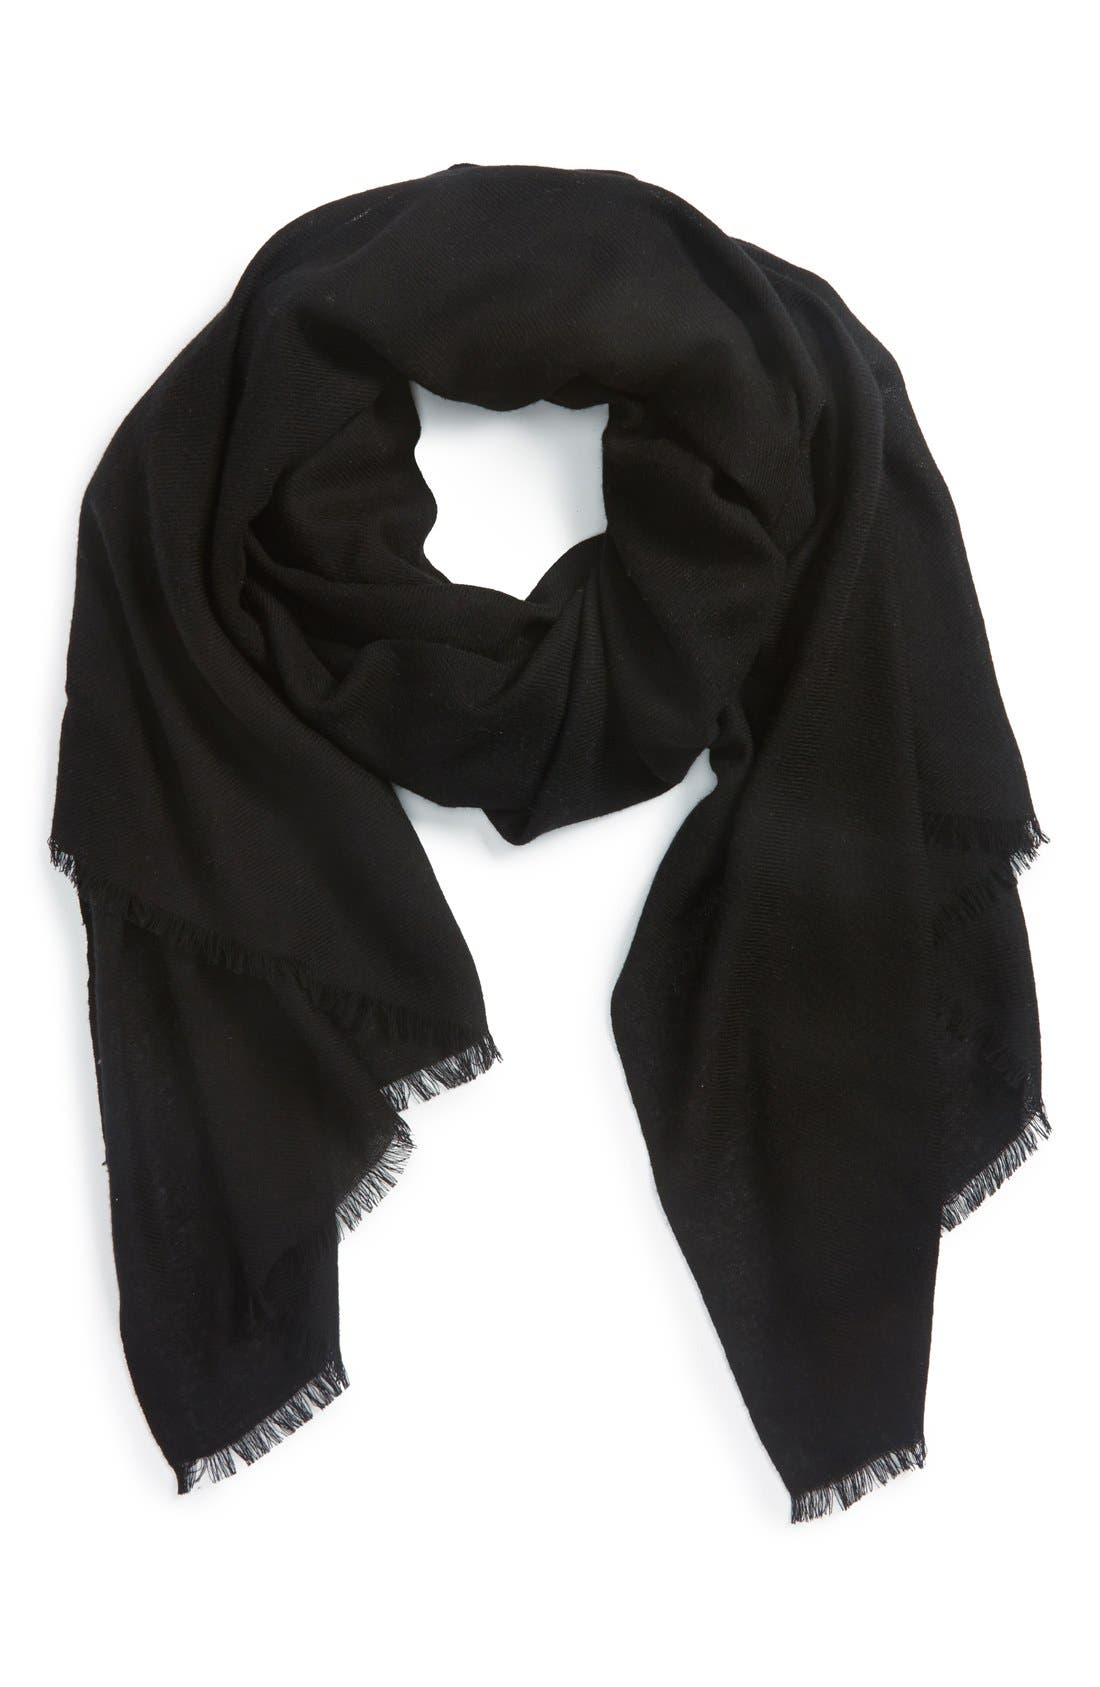 NORDSTROM Wool & Cashmere Wrap, Main, color, 001